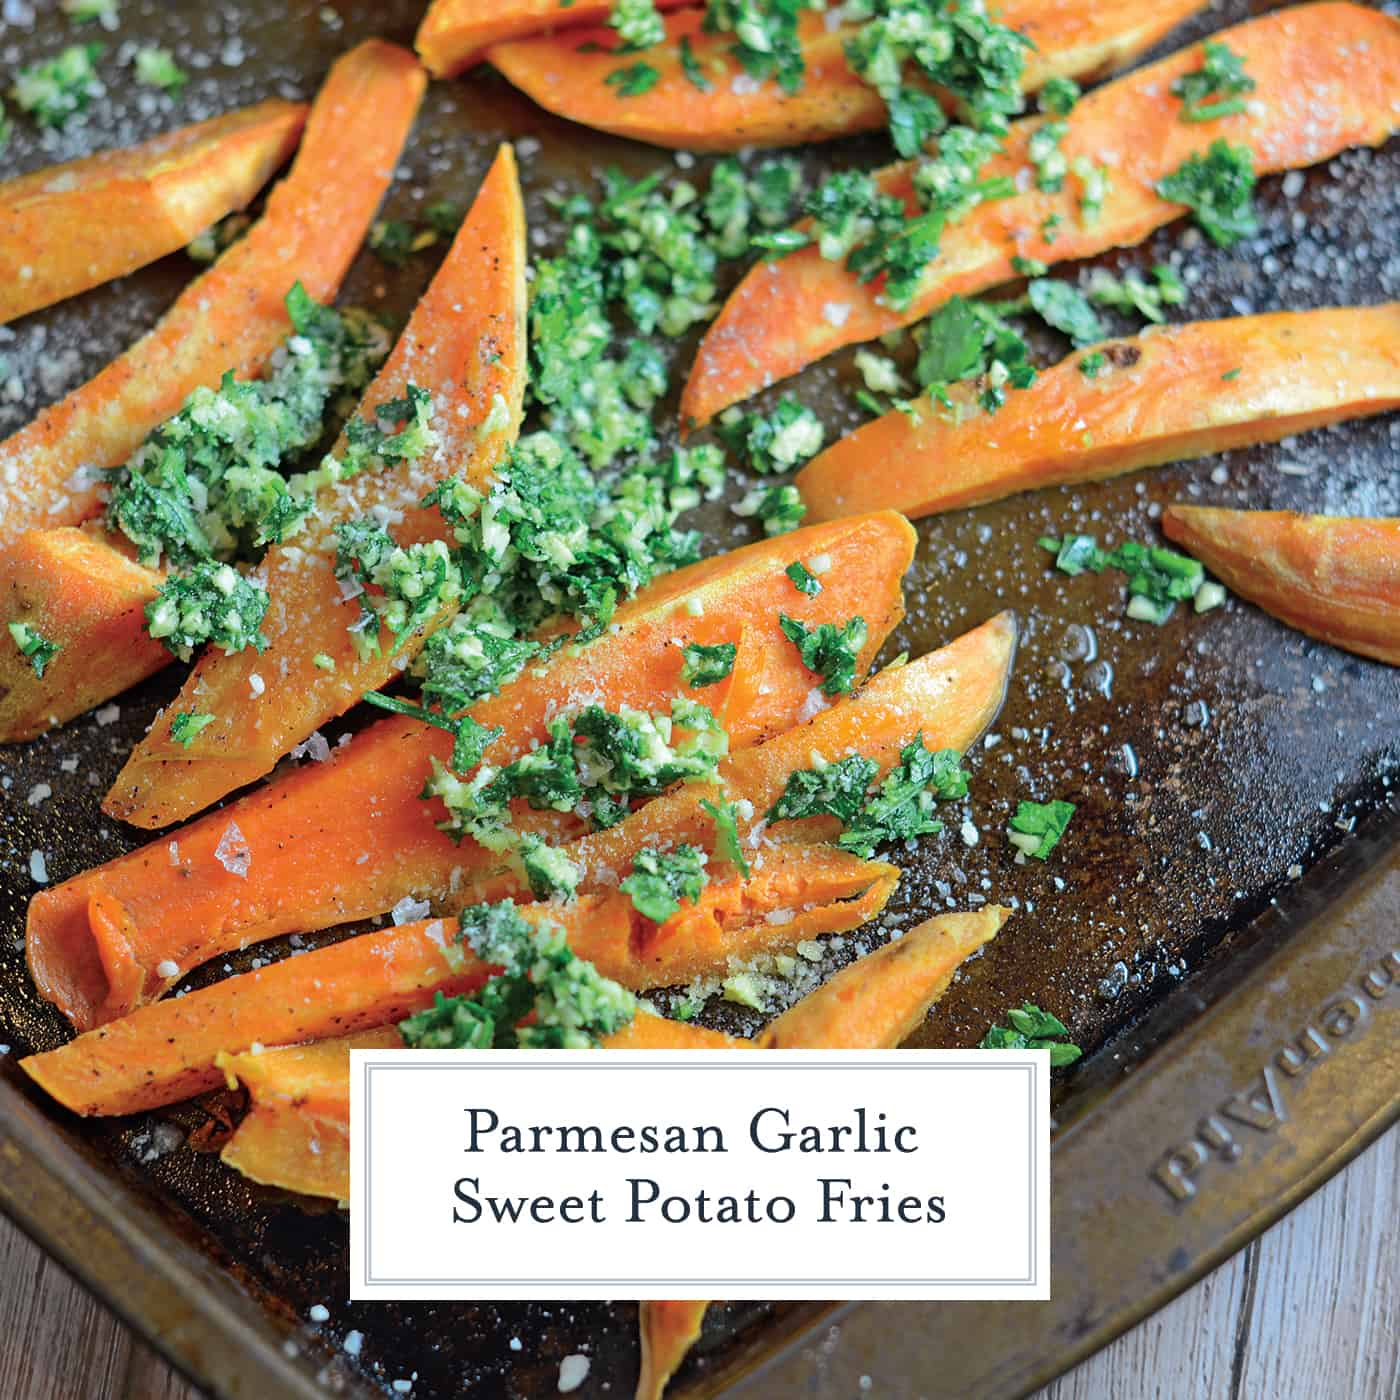 Garlic Parmesan Baked Sweet Potato Fries will jazz up your dinner with lightly tossed herbs, cheese and tender sweet potatoes! This sweet potato fries recipe has the perfect amount of savory flavor to satisfy everyone!